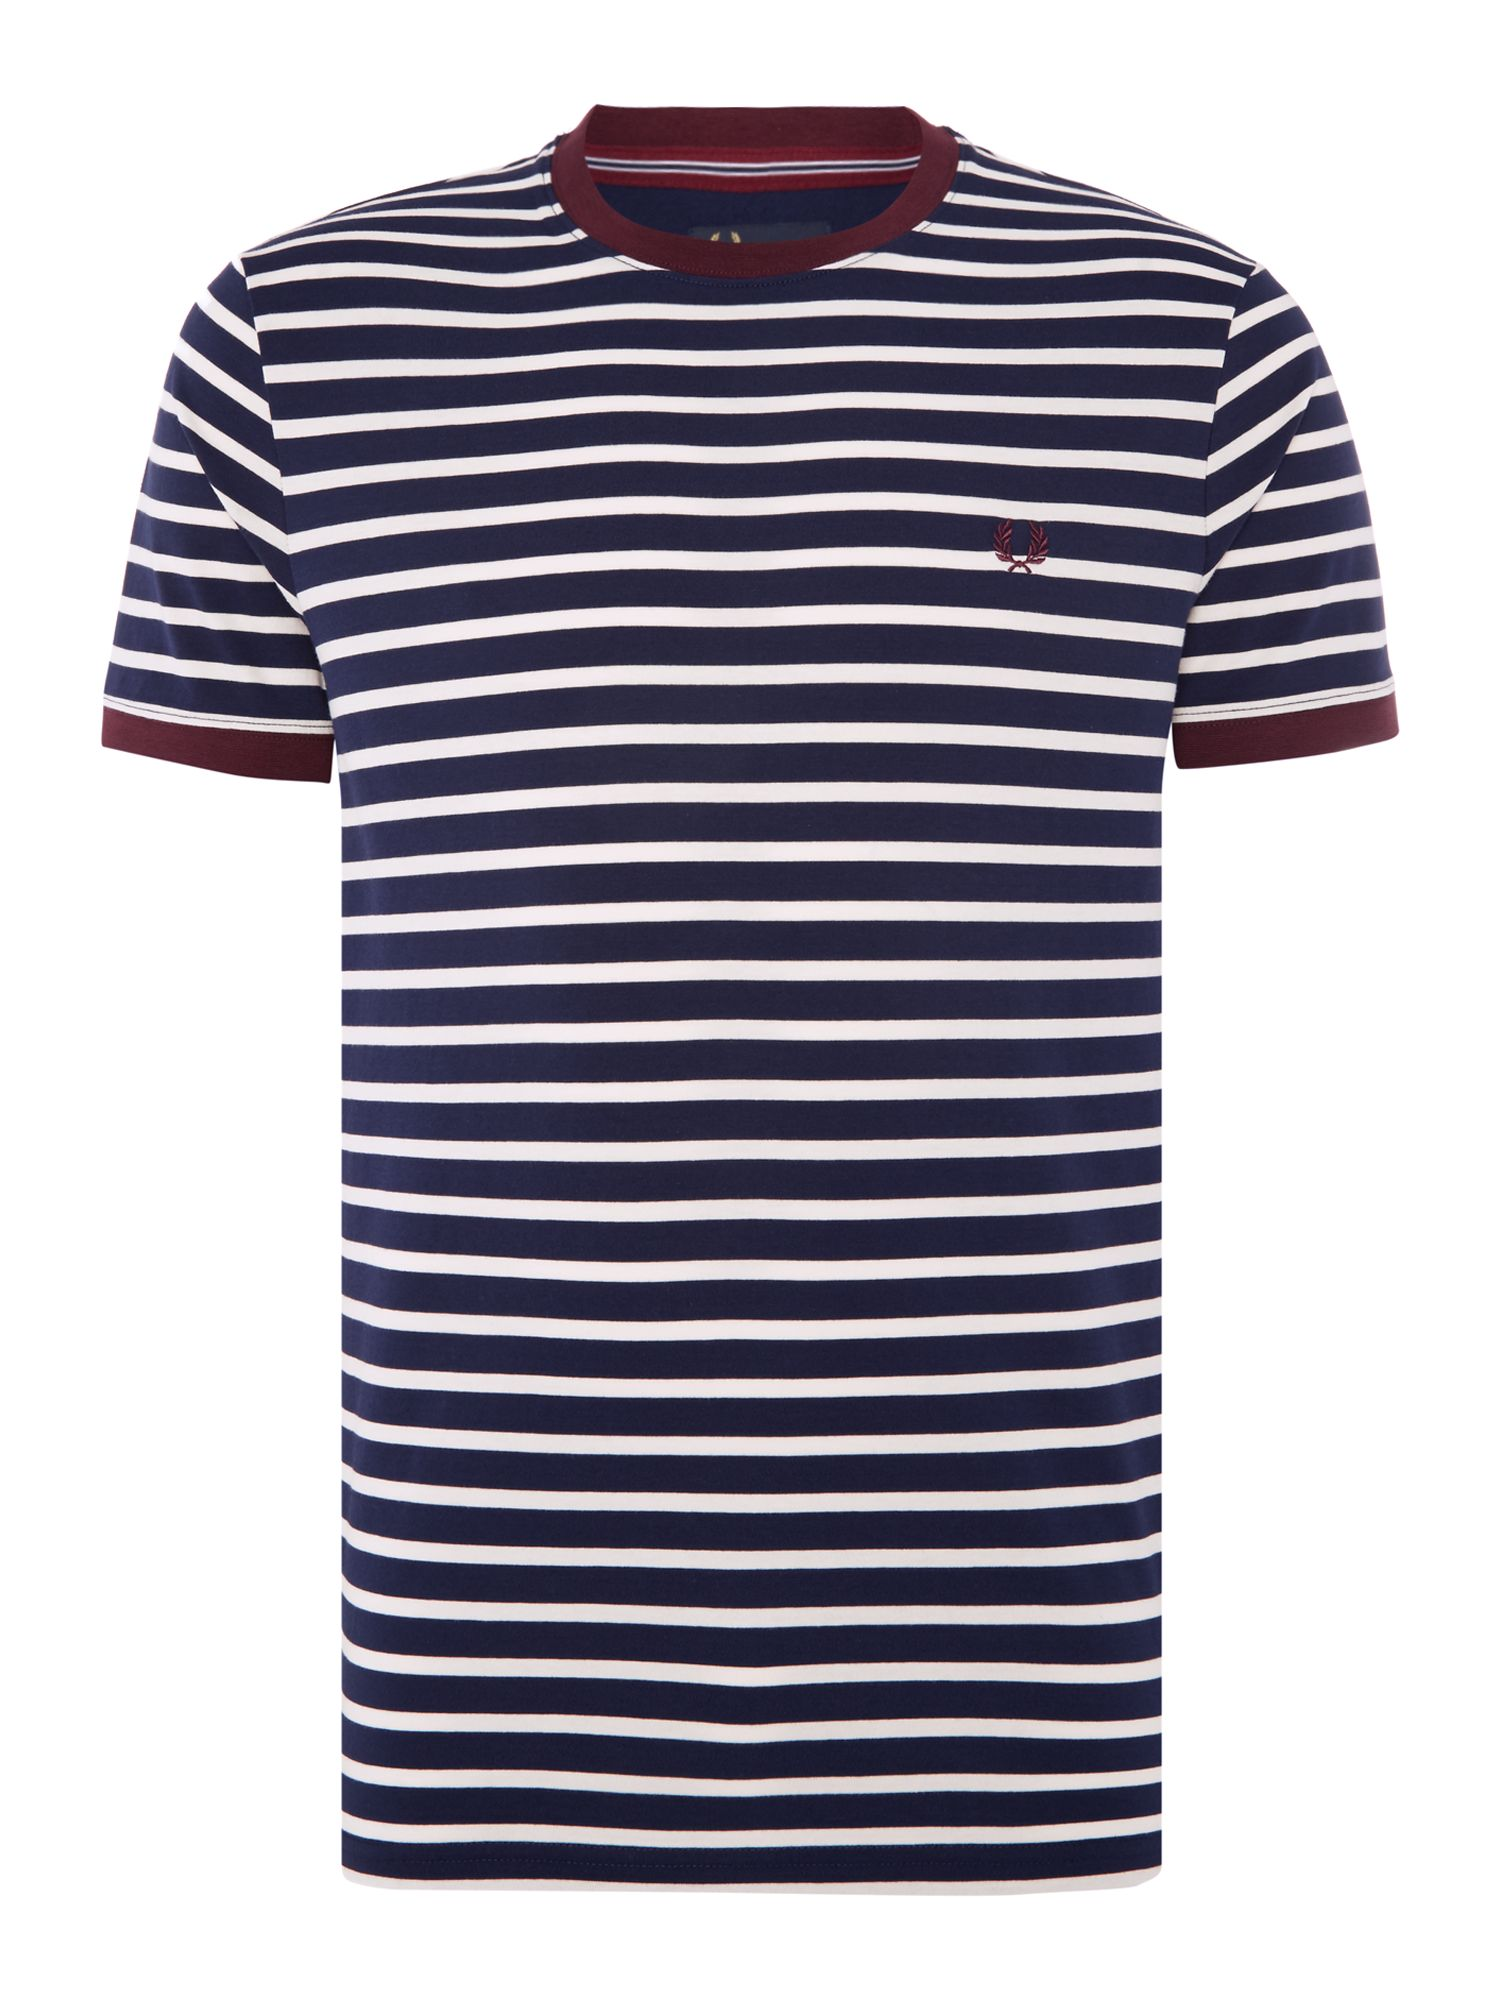 Men's Fred Perry Breton stripe ringer tshirt, Dark Blue